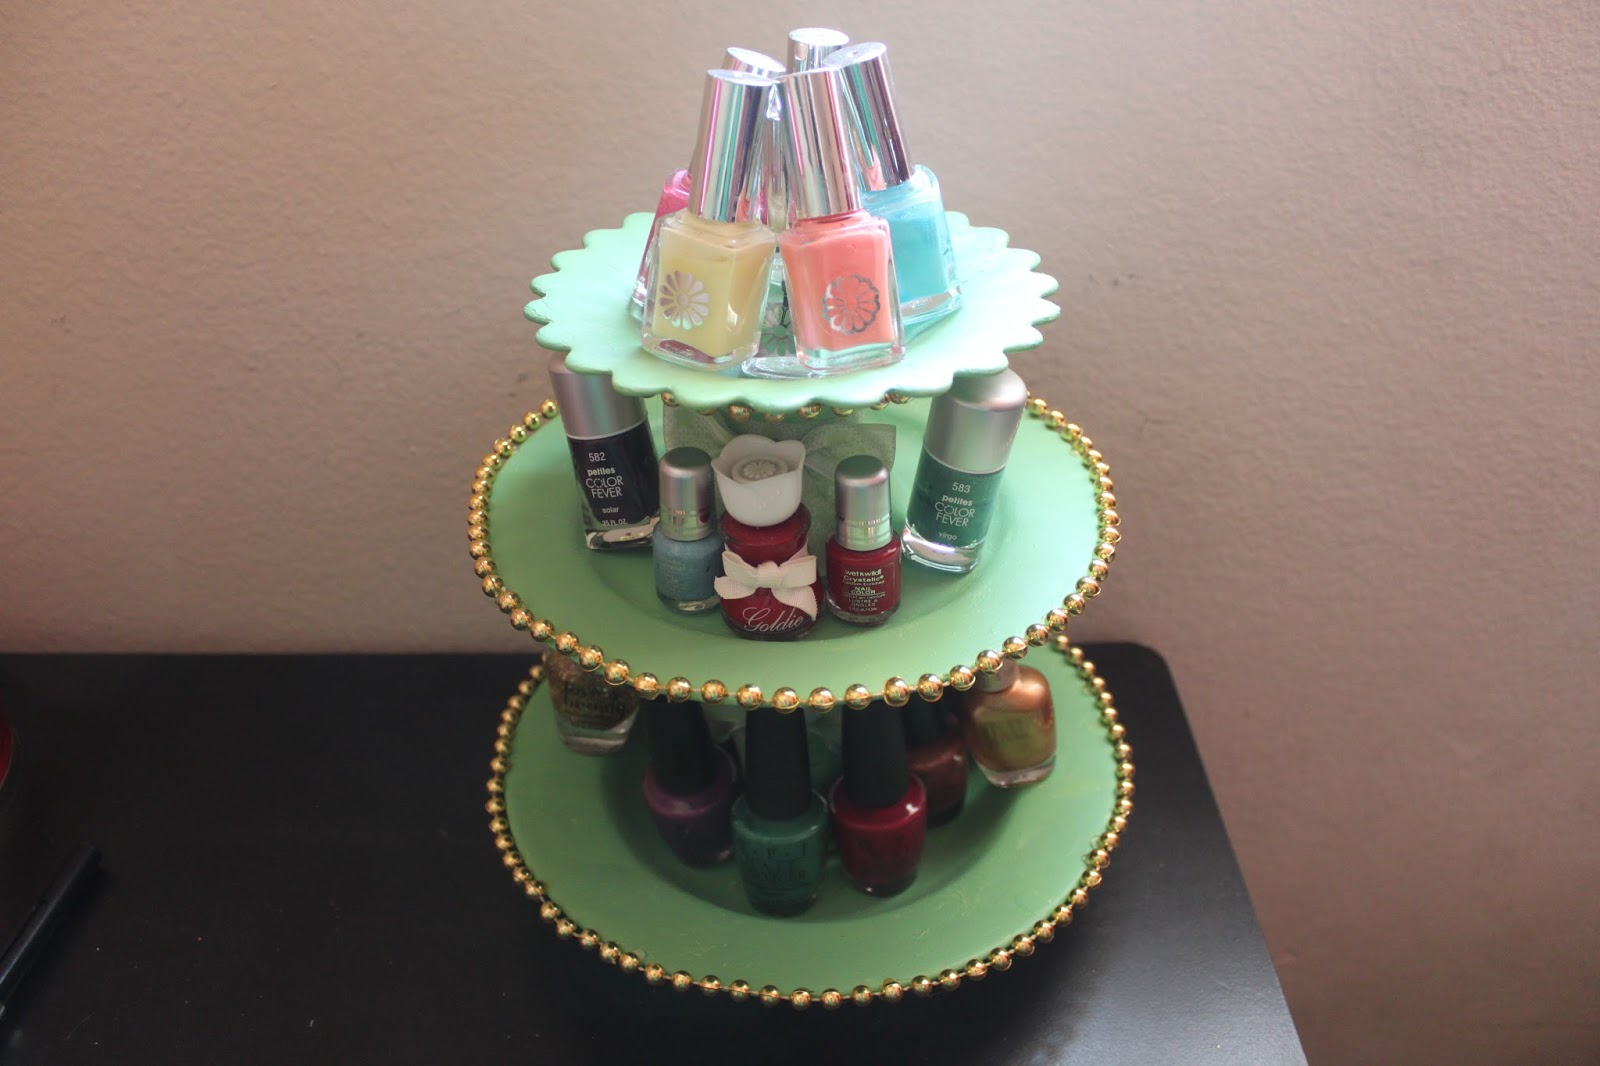 Diy nail polish stand simple stylings wanna learn how to make use of common household objects heres one of the ways to organize your nail polishes if youre a cosmetic hoarder like me solutioingenieria Choice Image